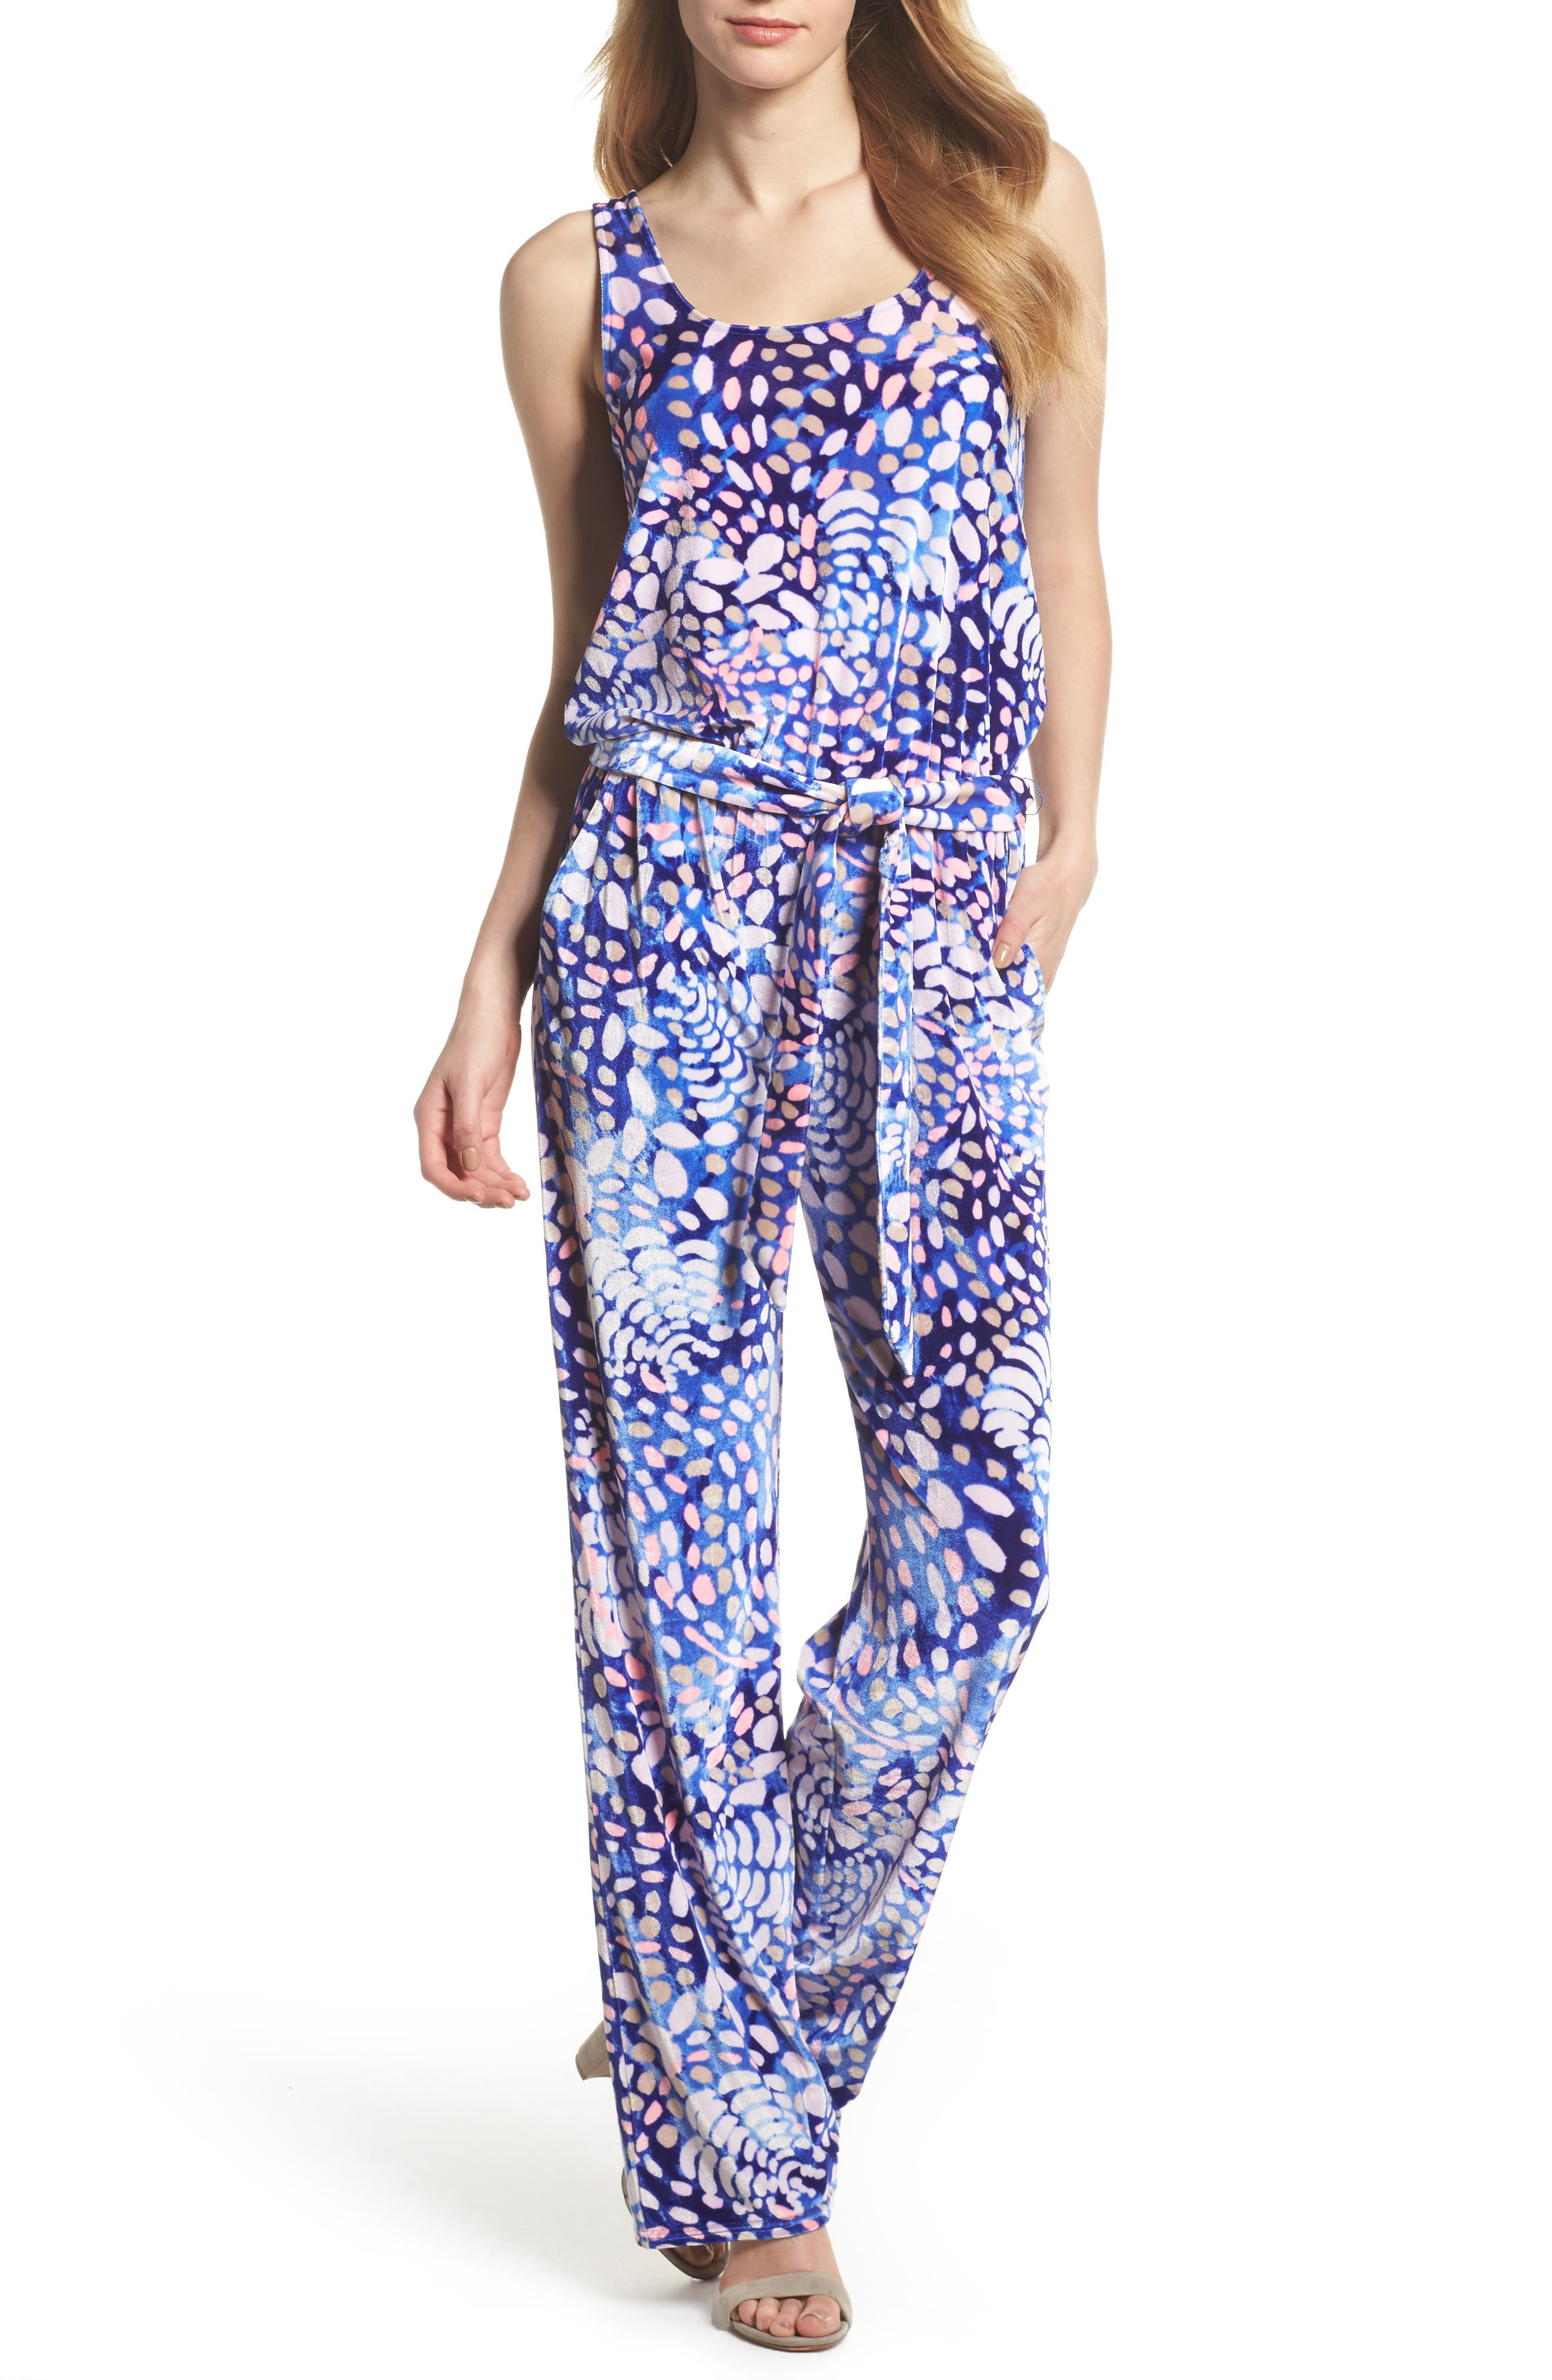 Nena Velour Jumpsuit,                         Main,                         color, Beckon Blue Sparkling Grotto